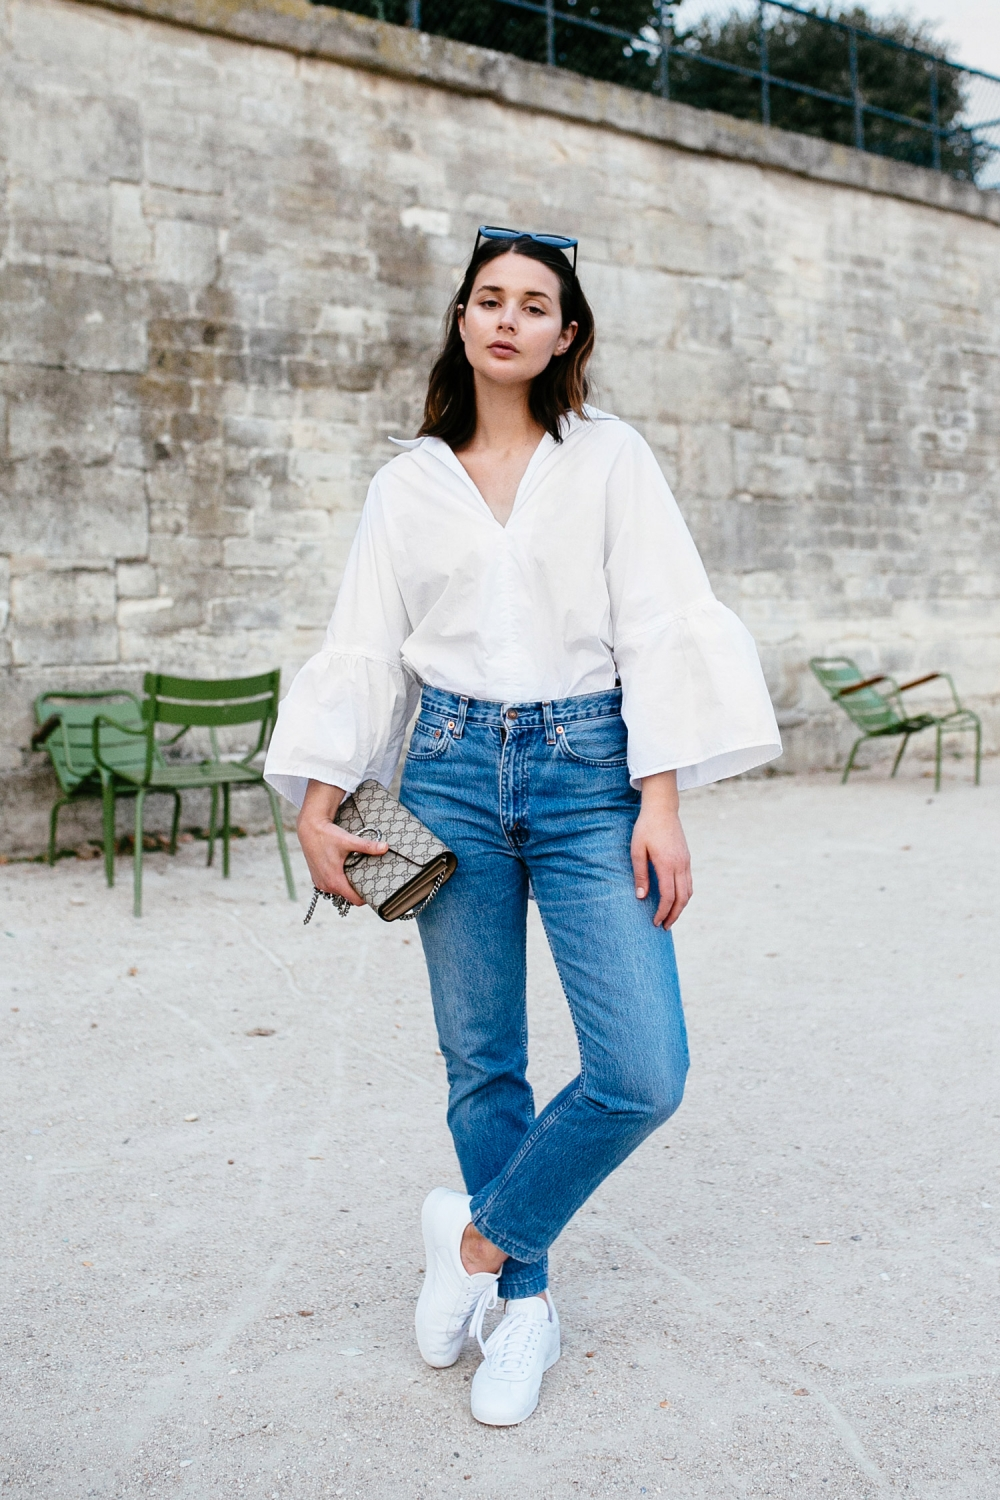 dda8d95f5eb Harper and Harley | White Shirt | Tome | Blue Denim Levis | Style | Outfit  ...